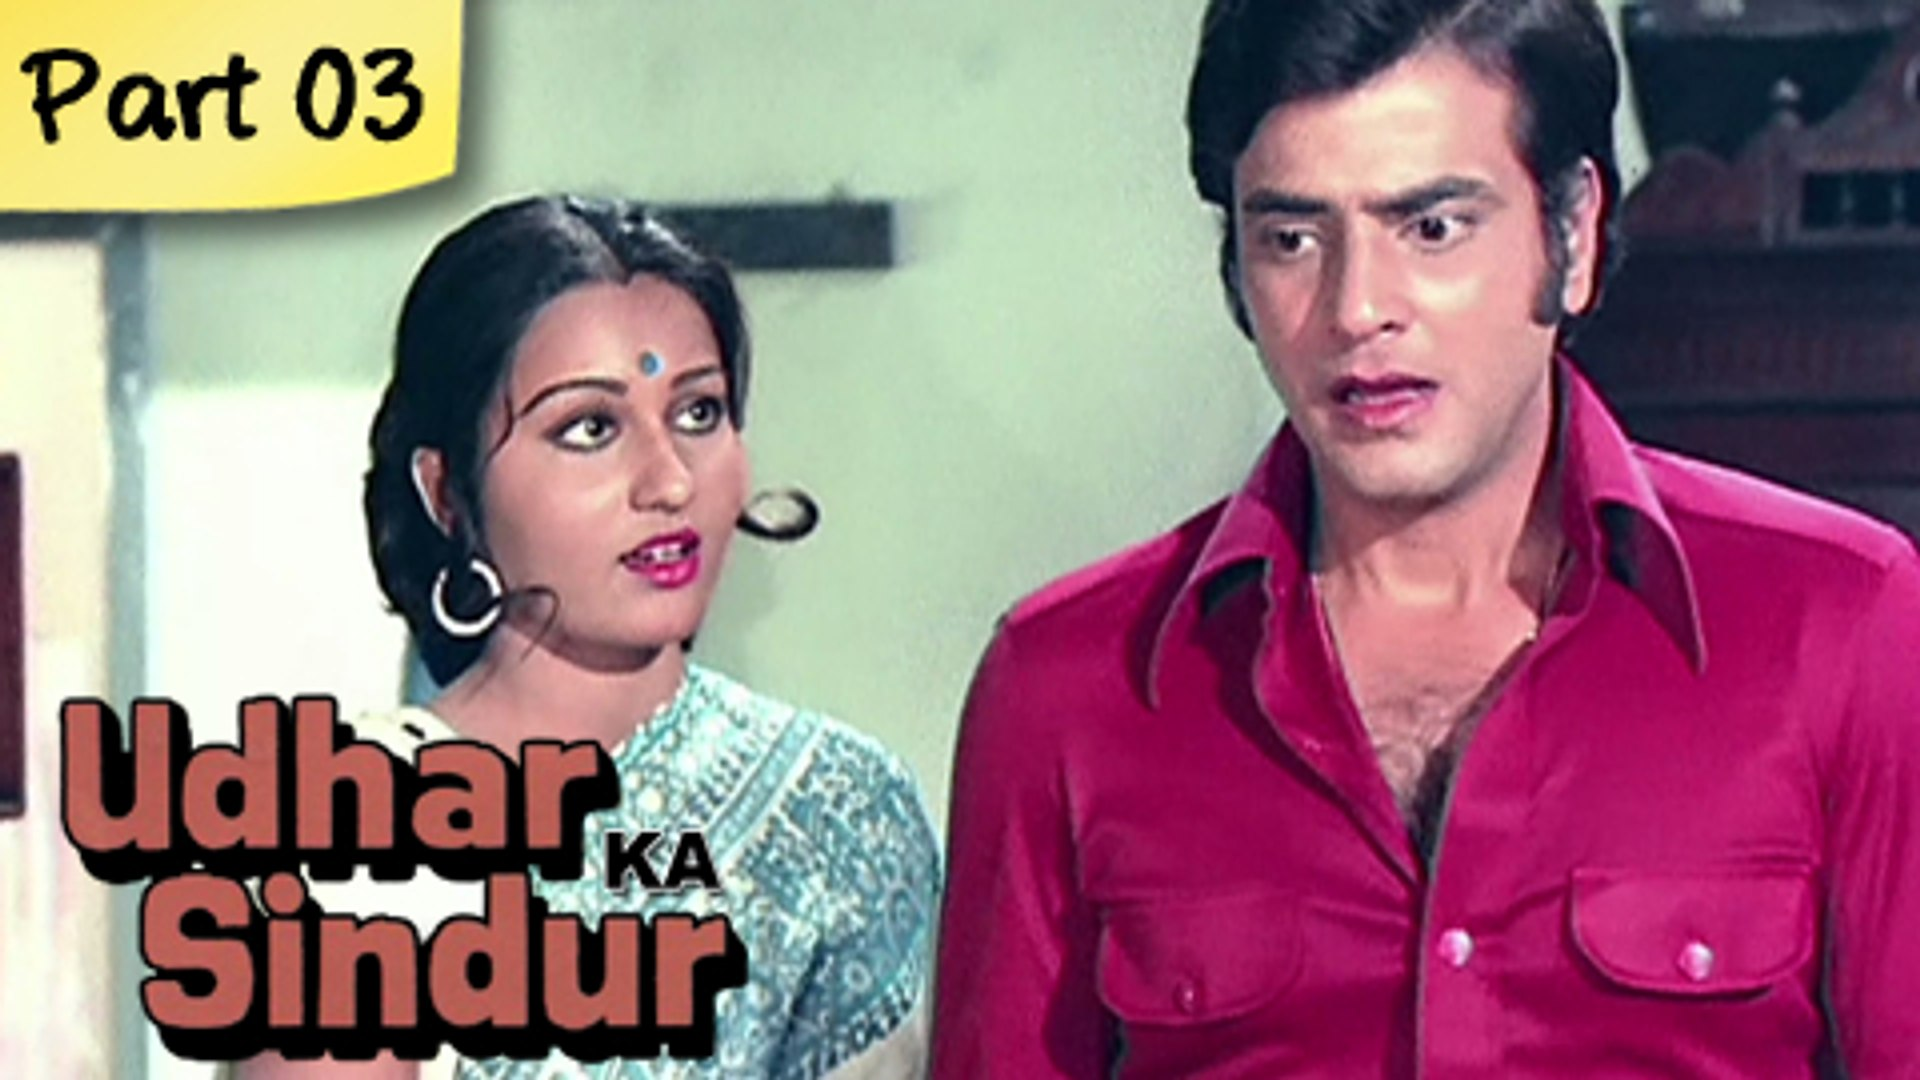 Udhar Ka Sindur (HD) - Part 03/12 - Super Hit Classic Romantic Hindi Drama - Jeetendra